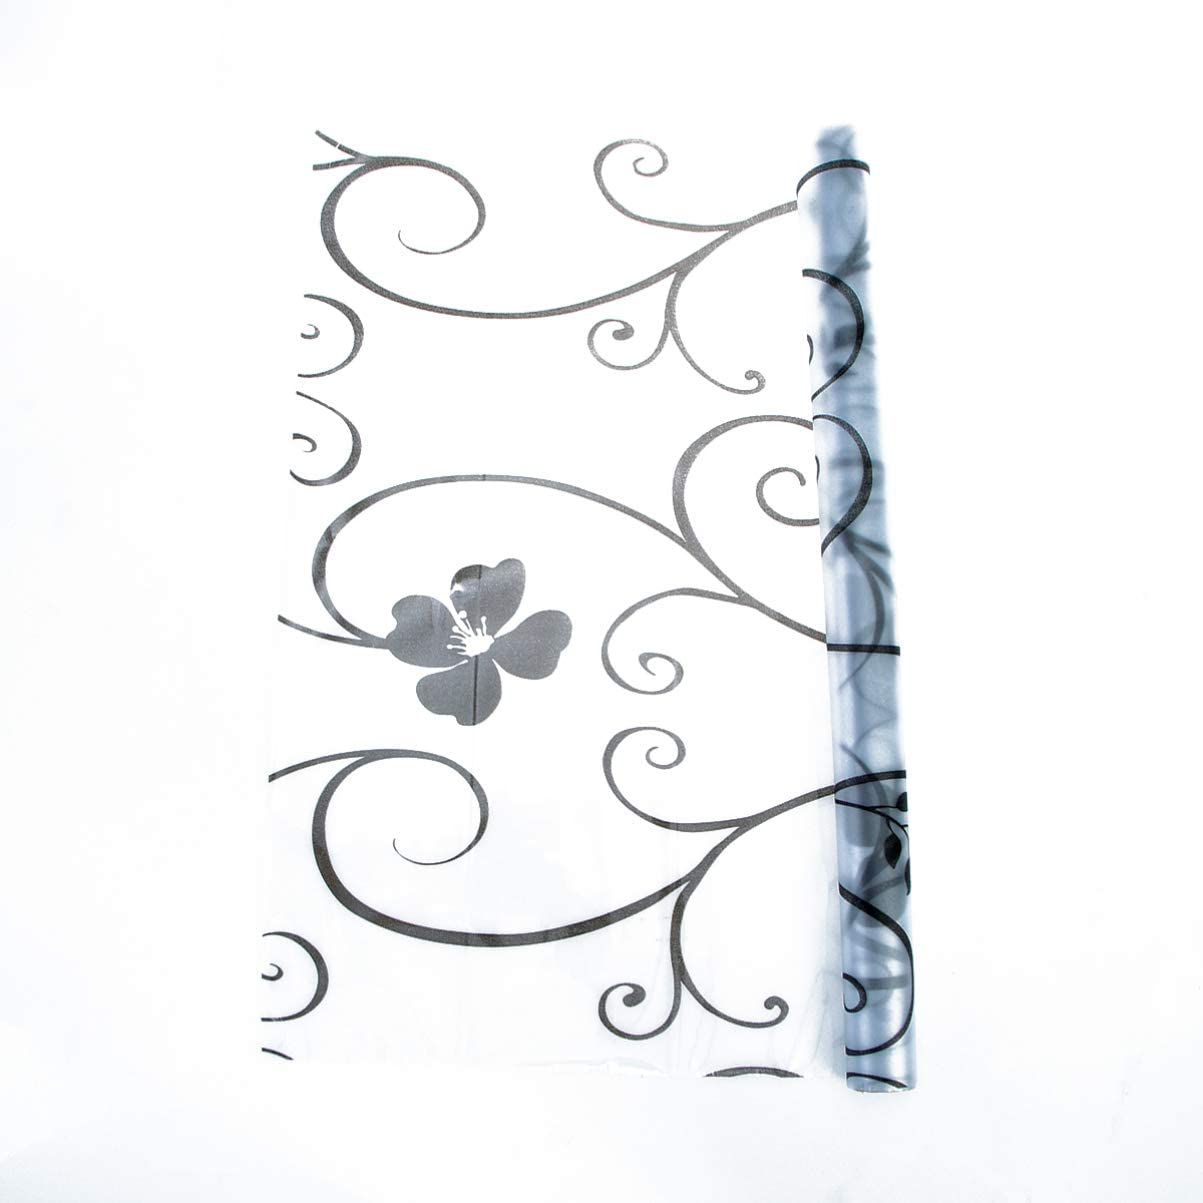 BESPORTBLE Self-Adhesive Frosted Glass Window Stickers Black Floral Flower Window Film Decals for Bathroom Bedroom Kitchen